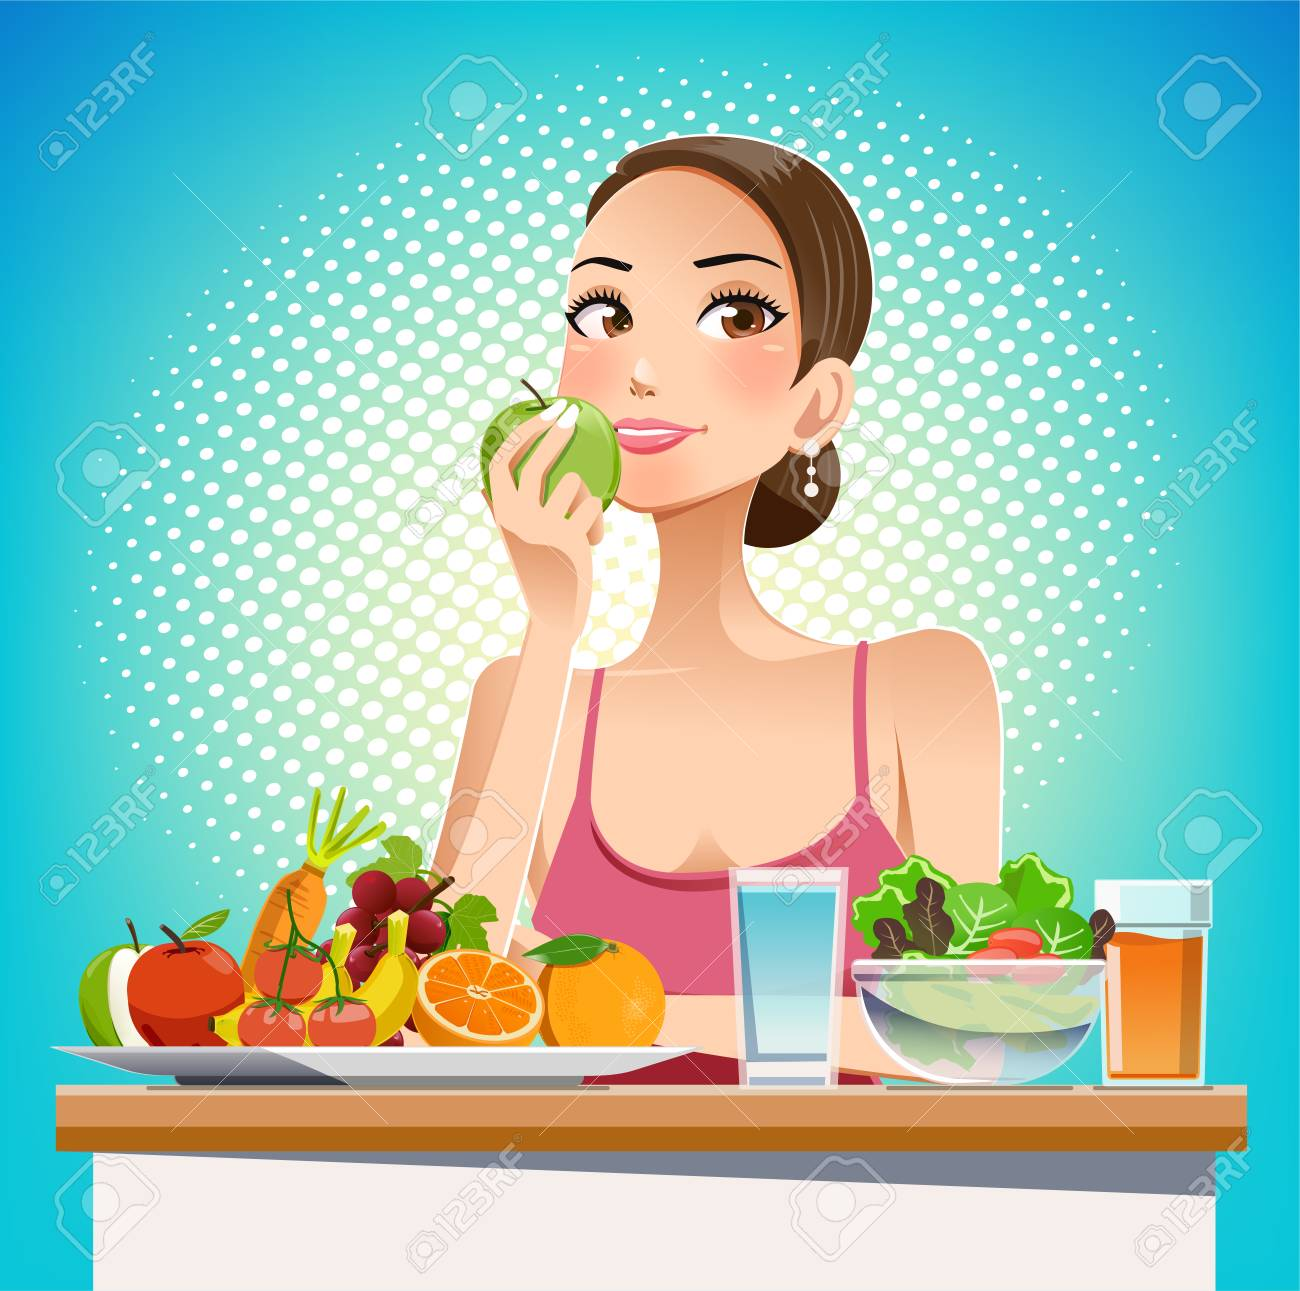 Eat for beauty. Eating for weight control. Caring for the body shape effectively. Food friendly. Pop cartoon graphic style. - 90859627